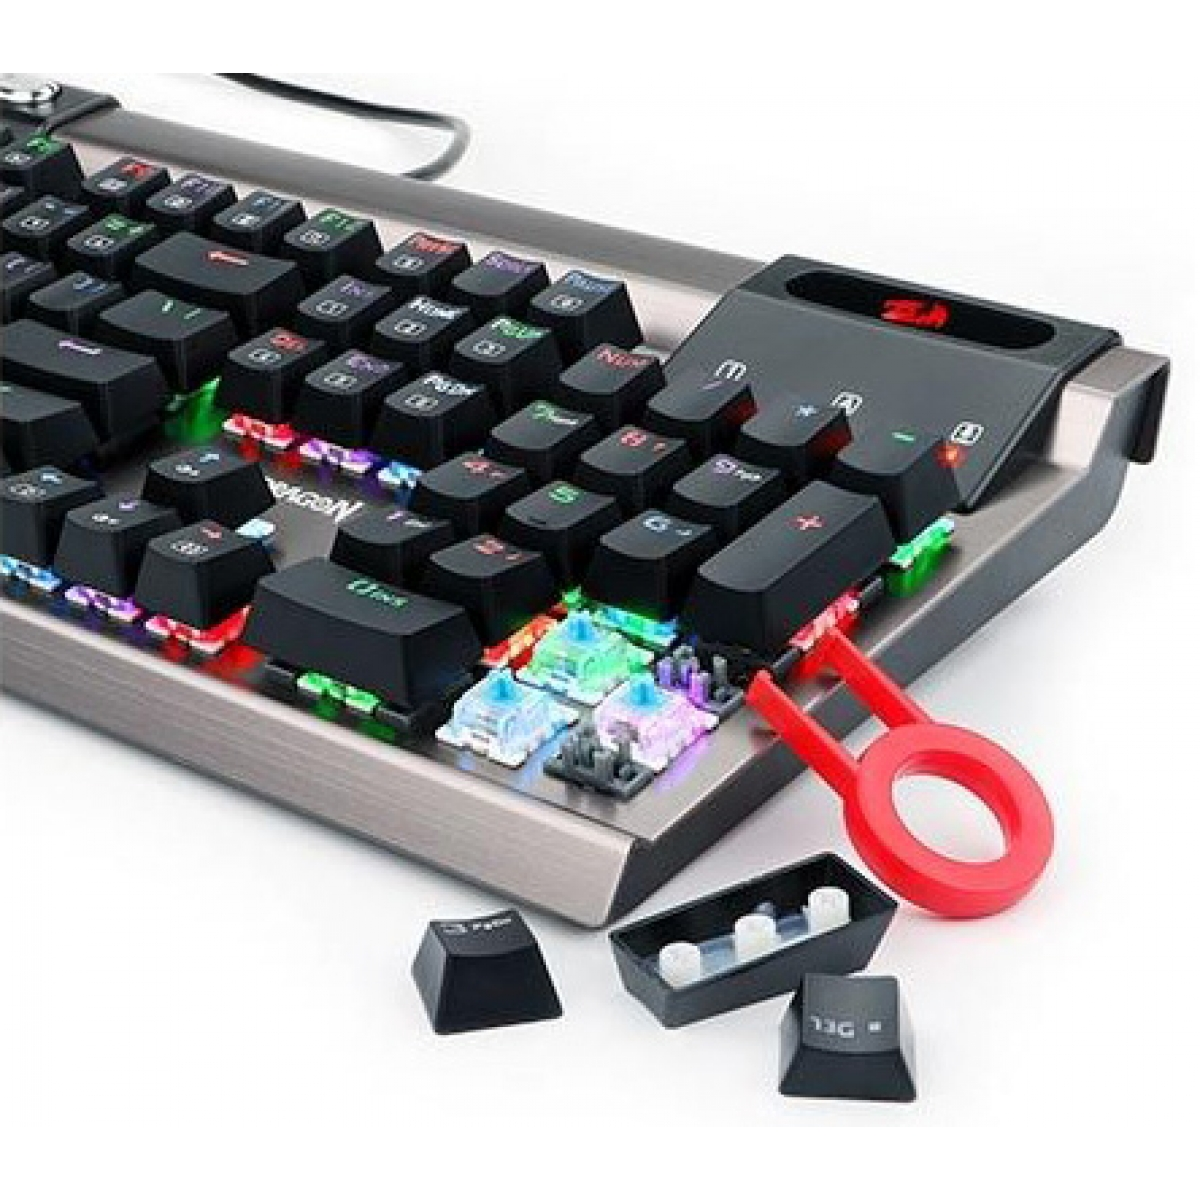 Teclado Mecânico Gamer Redragon Surya K563 RGB, Switch Outemu Blue, Grey